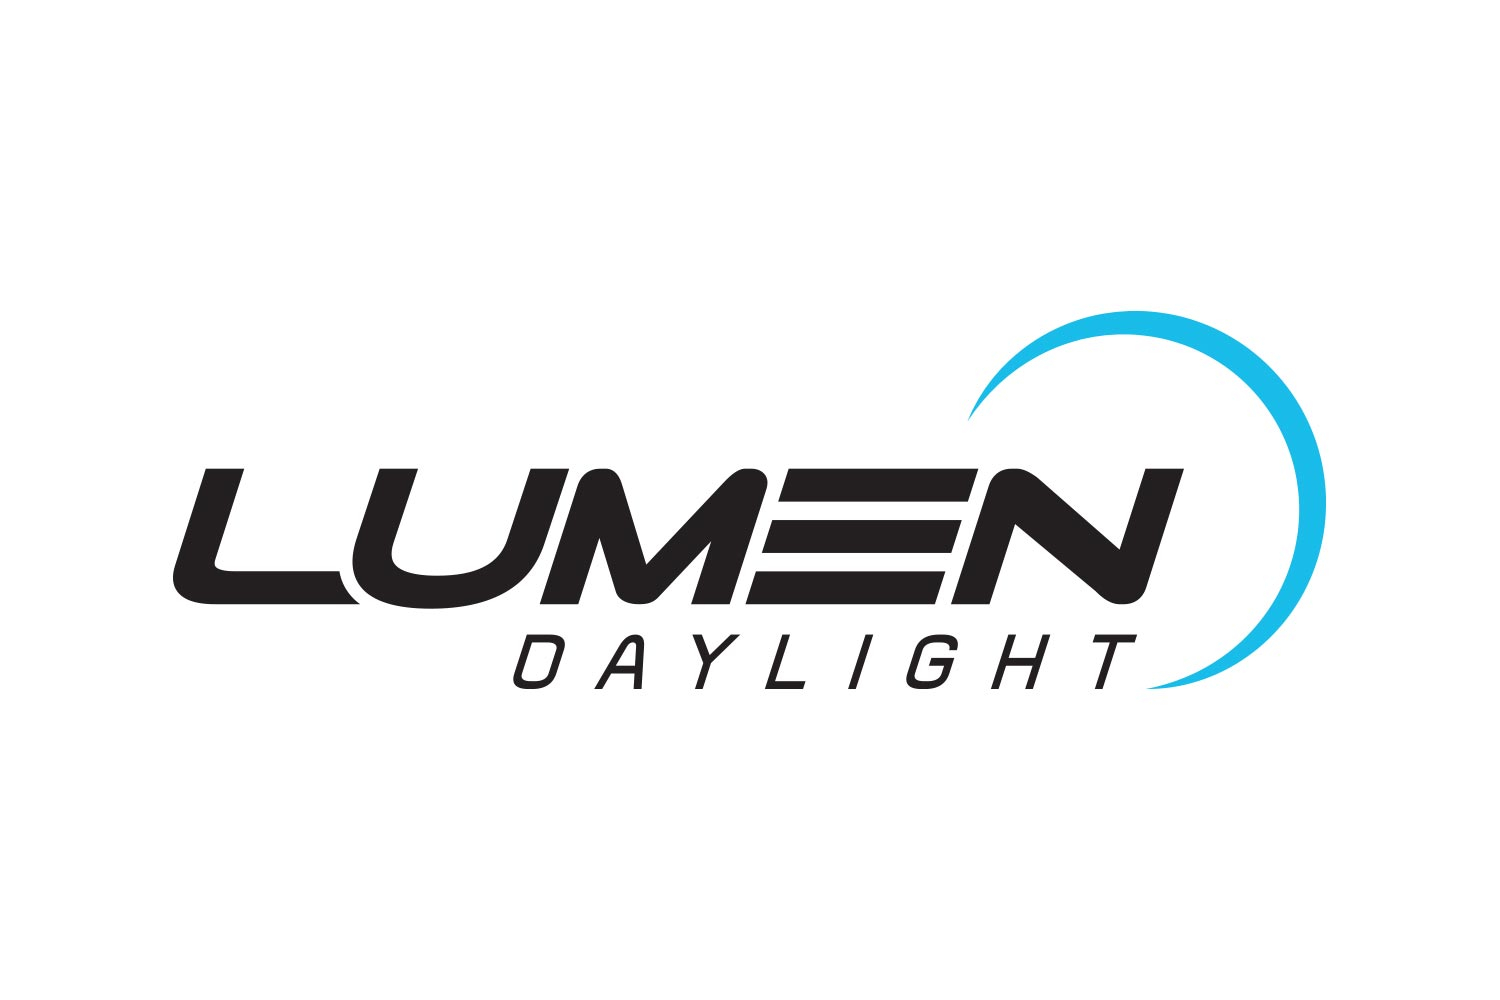 Lumen Cyclops9 Midnight LED extraljus